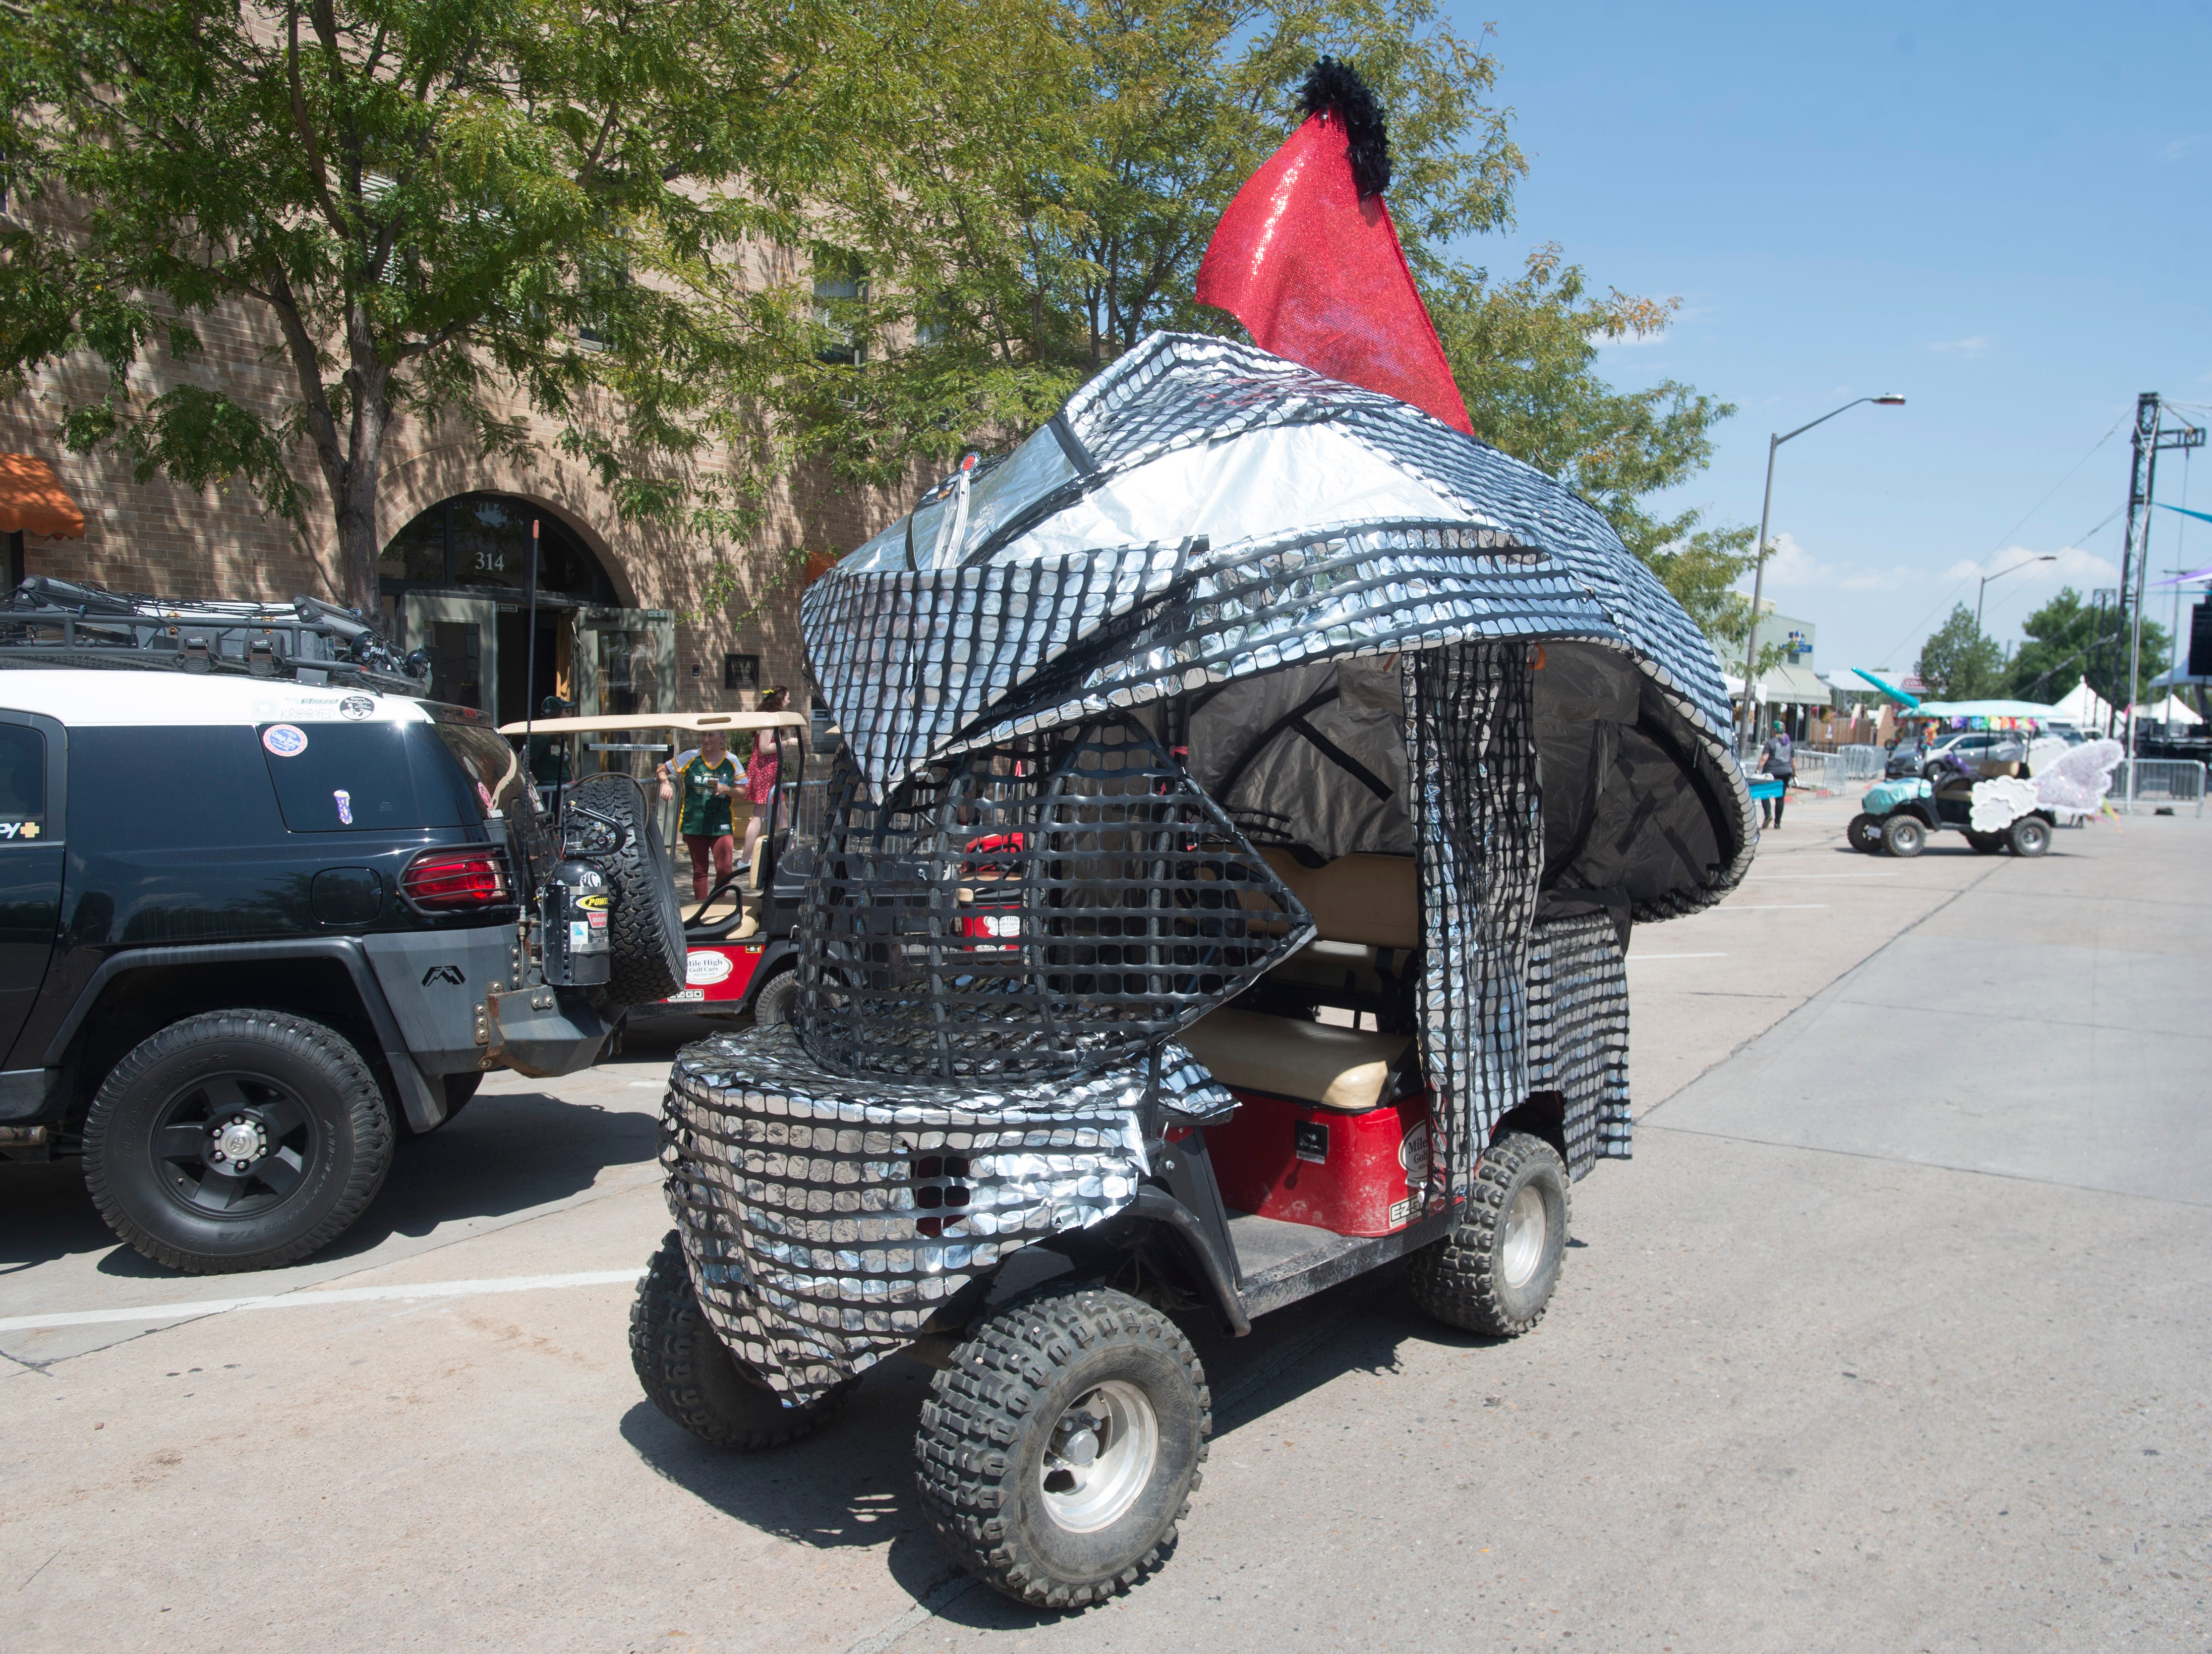 Golf Cart 8: Vote for your favorite NewWestFest decorated golf cart.